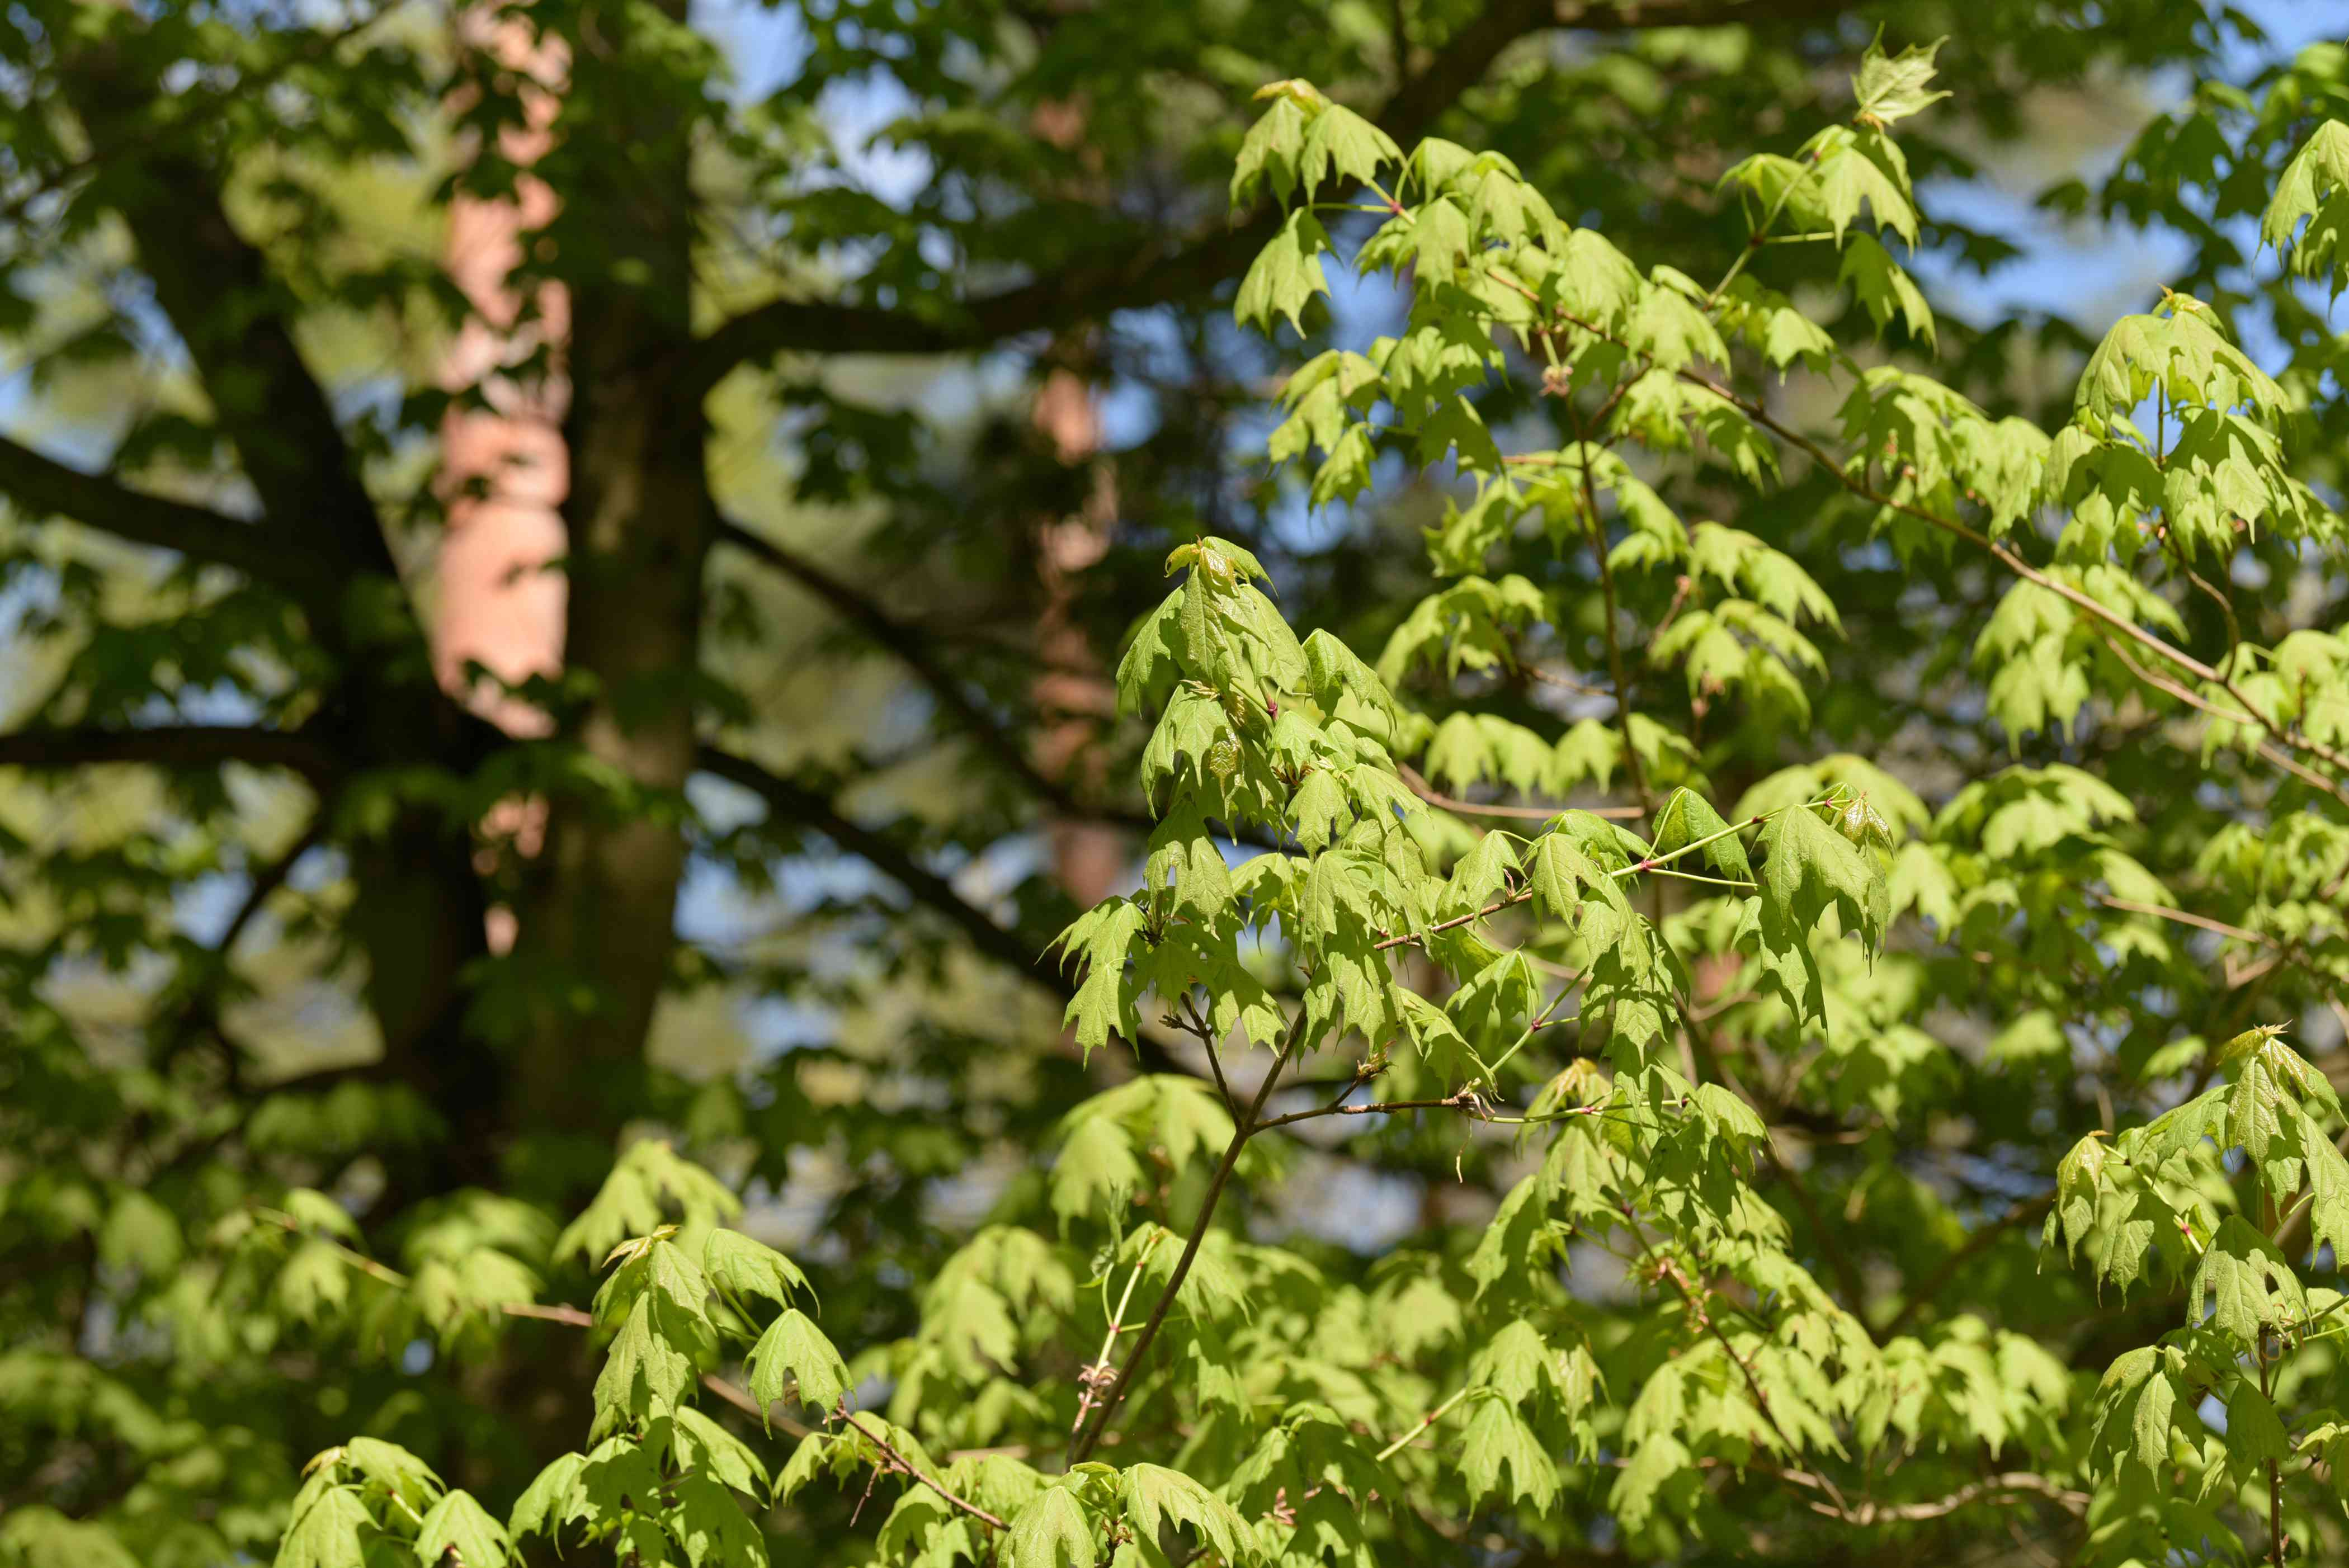 Sugar maple tree branches with bright green leaves in sunlight